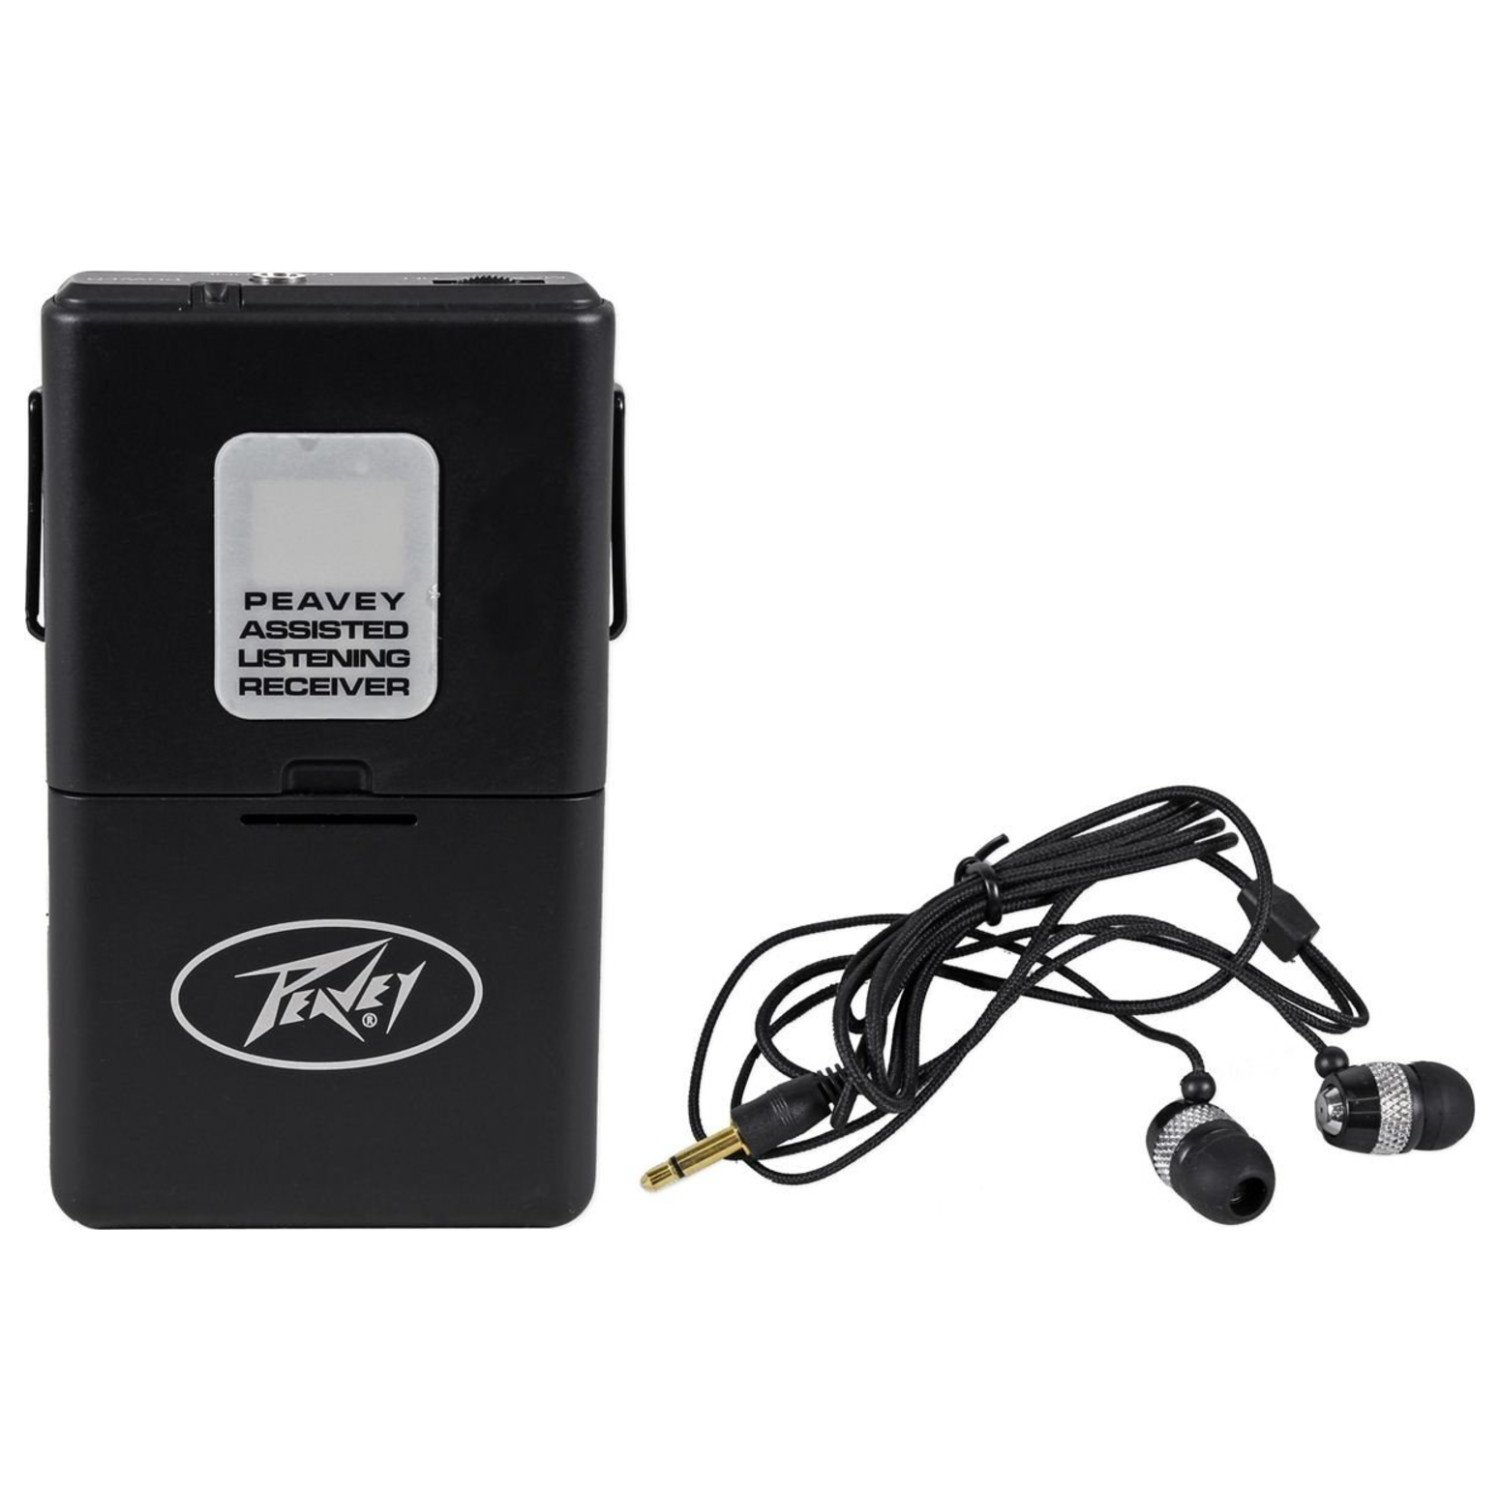 Peavey ALSR 72.1 Mhz Assisted Listening Receiver Body Pack for ALS 72.1 System Antenna–Integral With Earphones